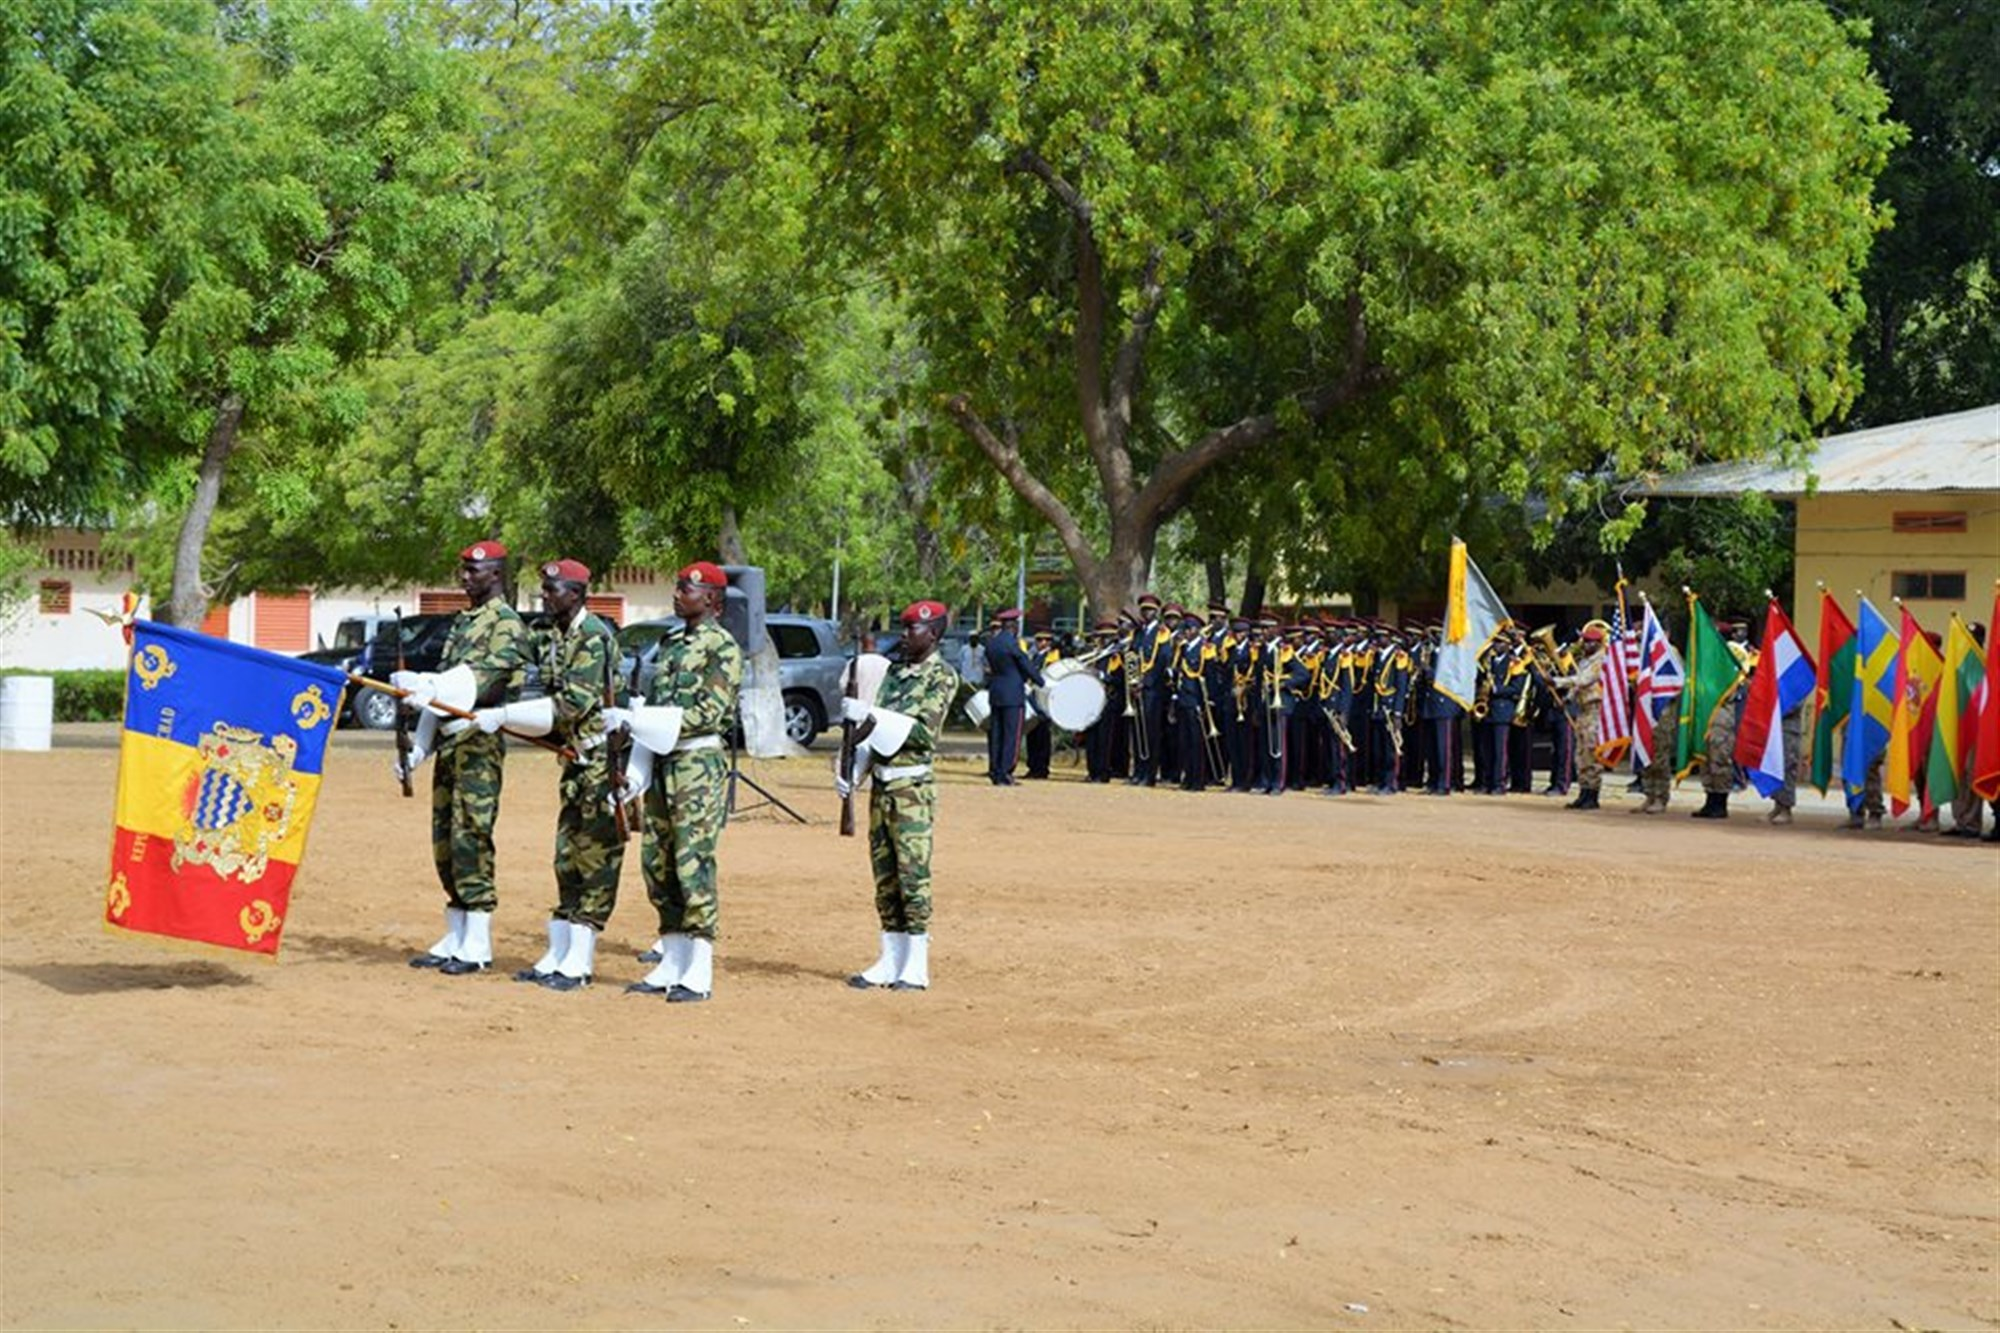 Flintlock 2015 closing ceremony, N'Djamena, Chad. (Photo by U.S. Army Sgt. 1st Class Jessica Espinosa, U.S. Special Operations Command Africa/RELEASED)